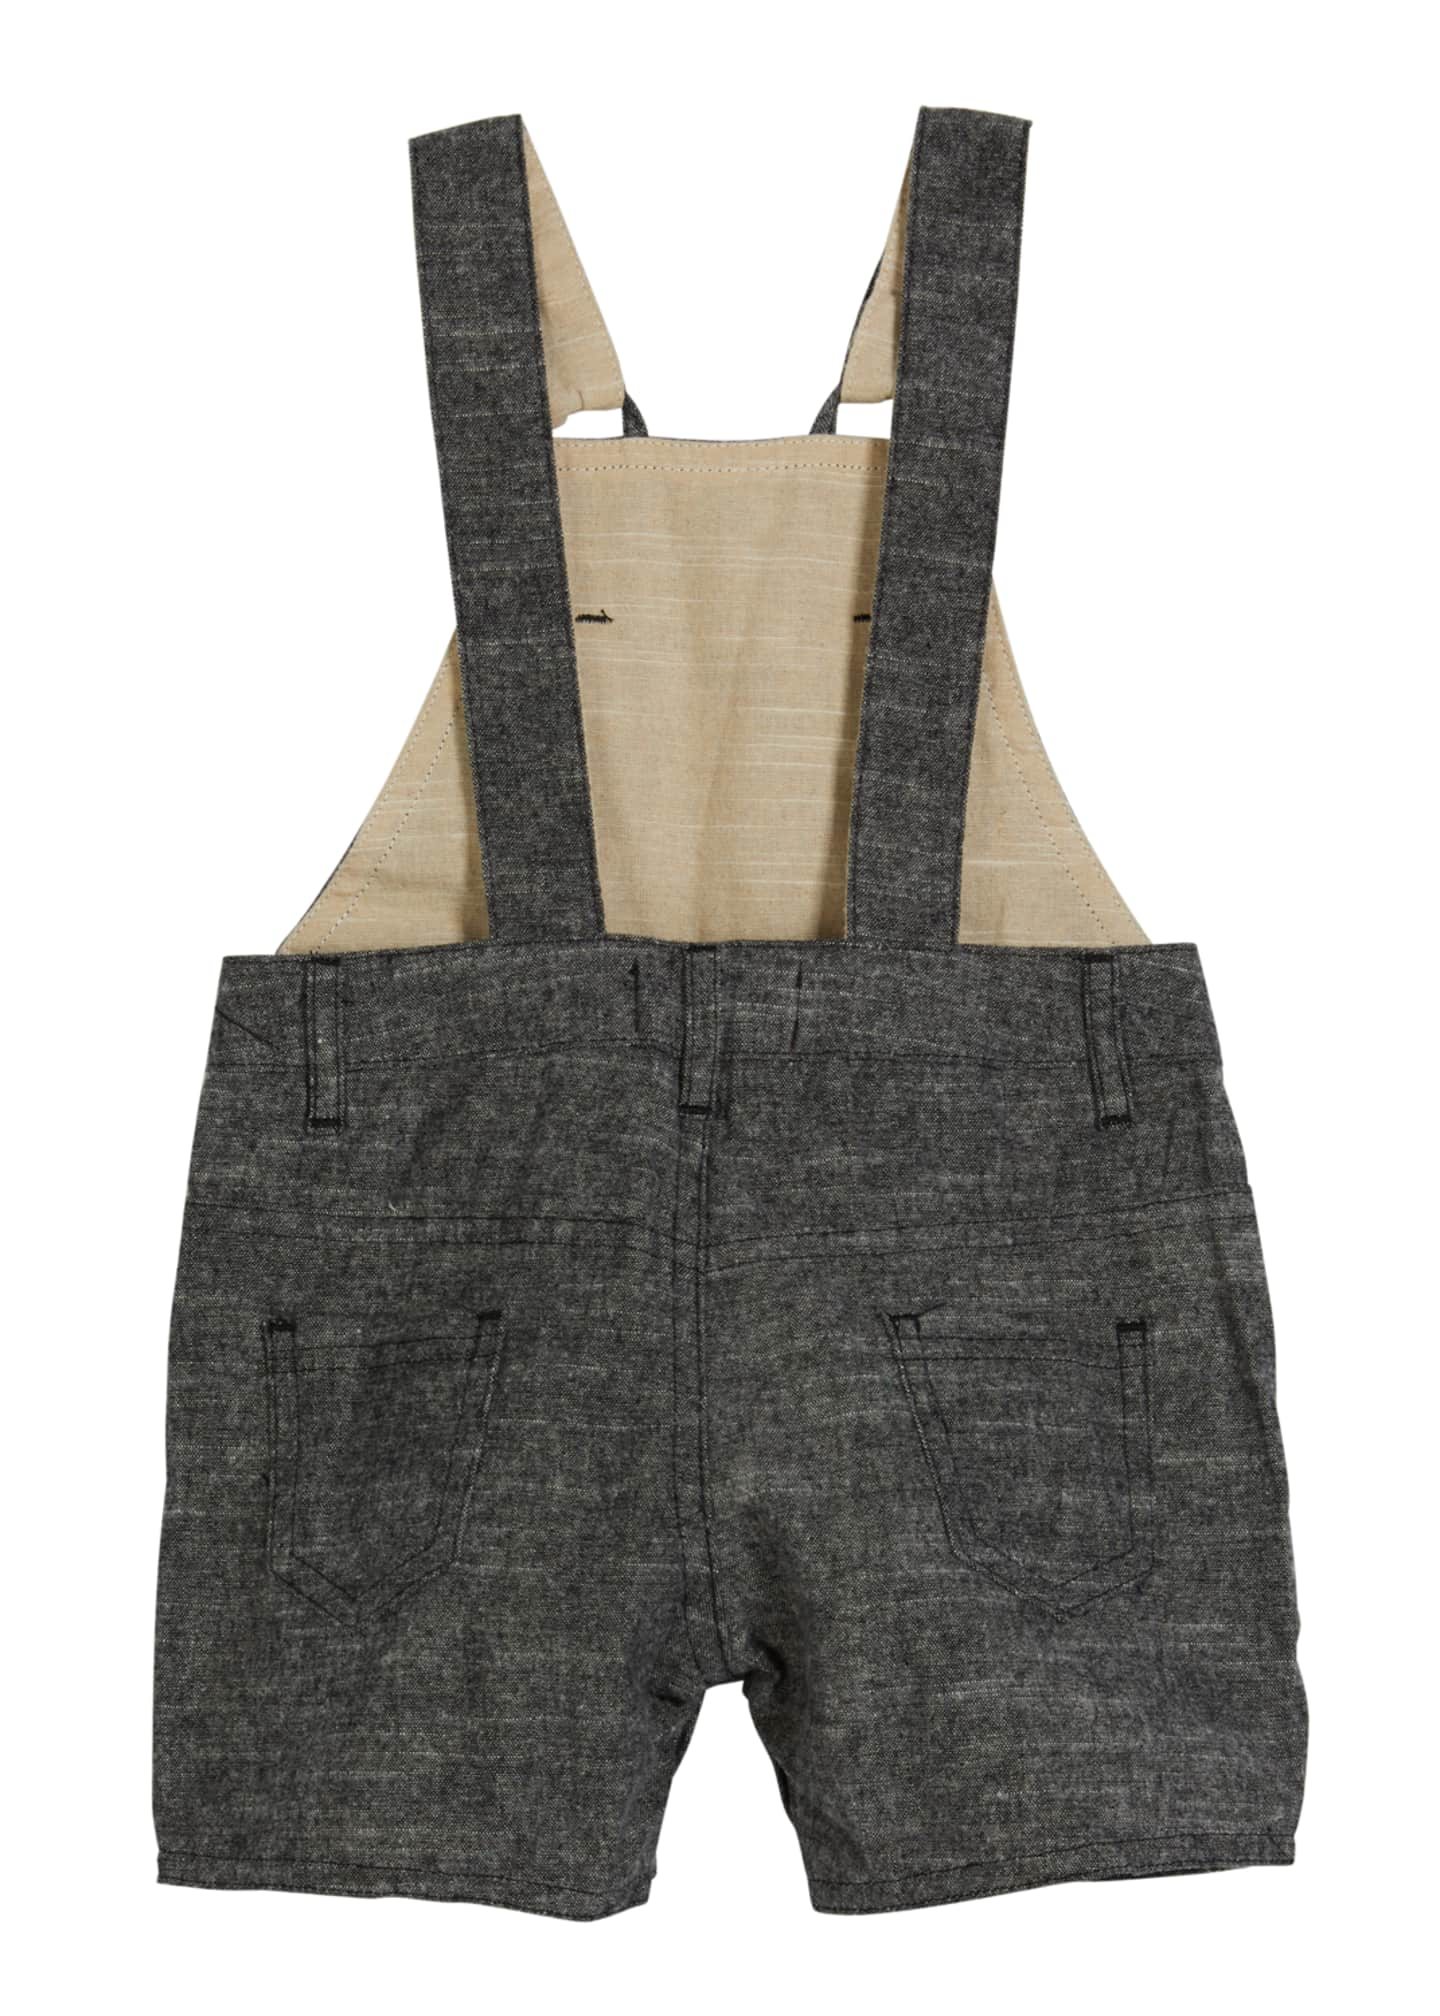 Image 2 of 2: Boy's Woven Cotton Overalls w/ Children's Book, Size 6-24 Months